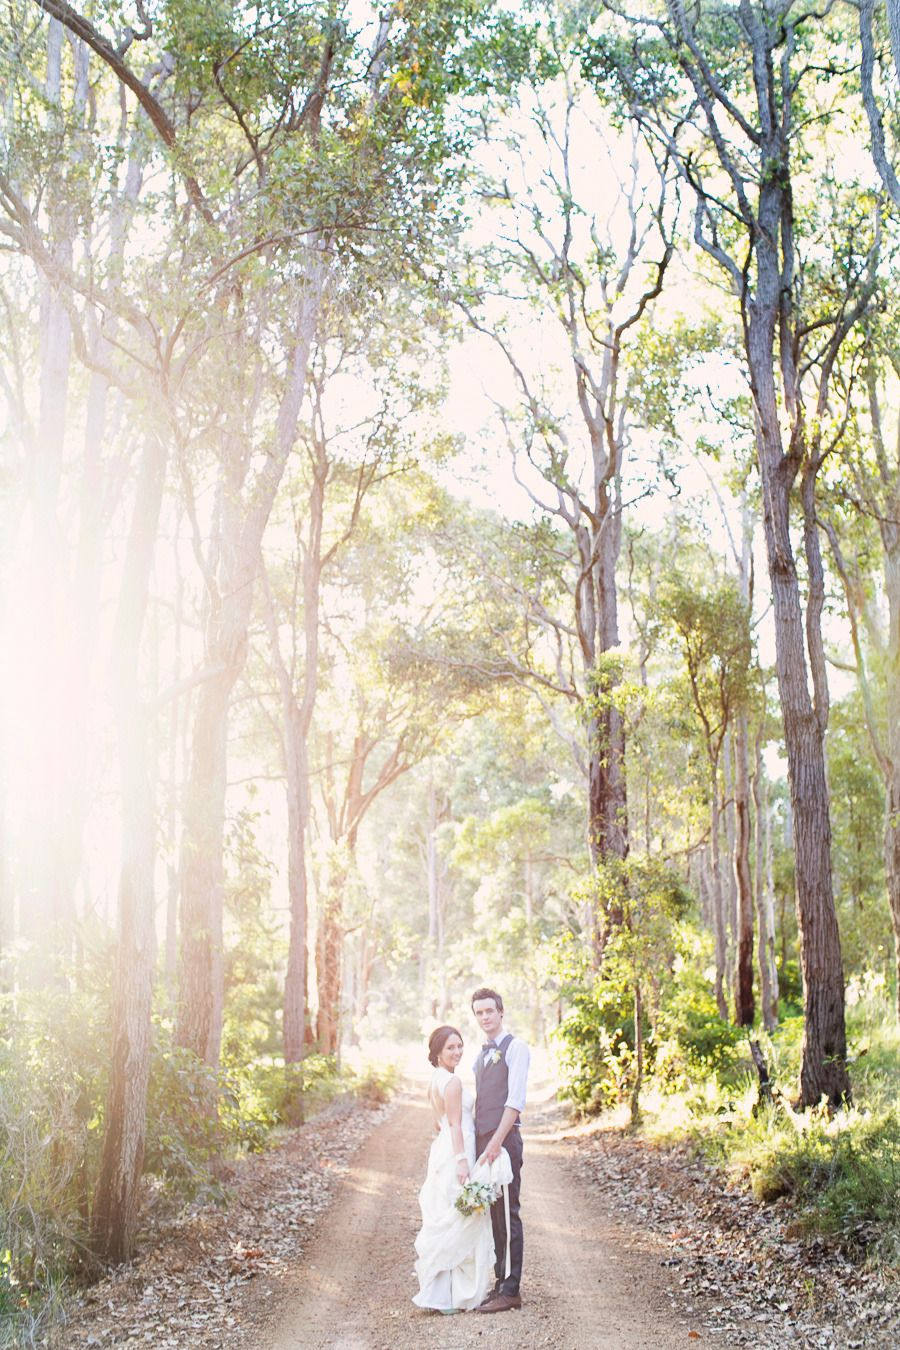 Photography: Nicolle Versteeg Photography - nicolleversteeg.com  Read More: http://www.stylemepretty.com/australia-weddings/western-australia-au/2014/05/27/relaxed-and-stylish-diy-garden-wedding/